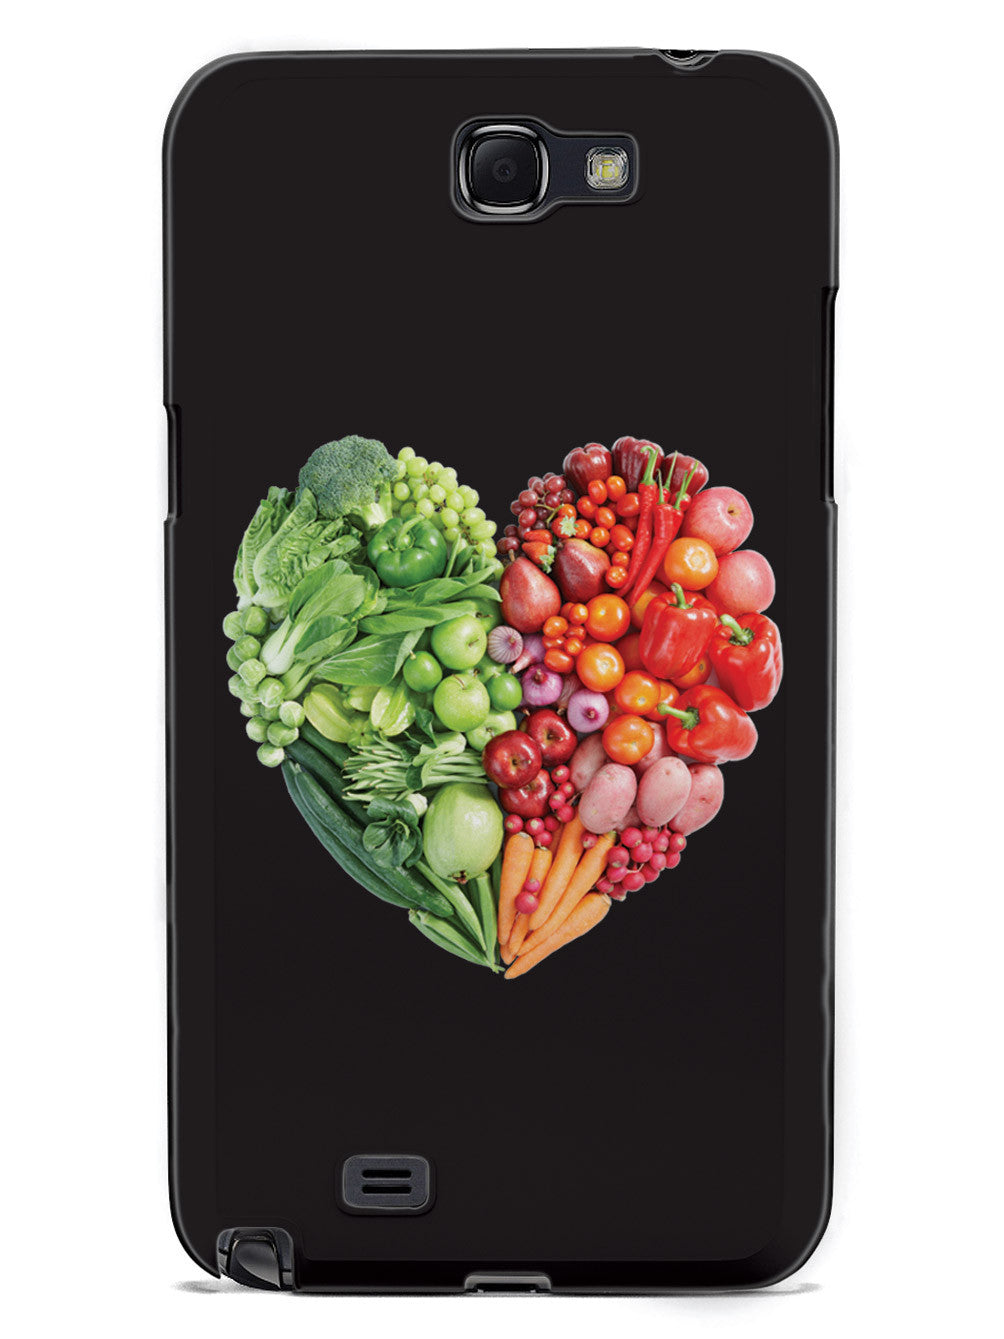 Healthy Food Heart - Fruits and Vegetables - Black Case